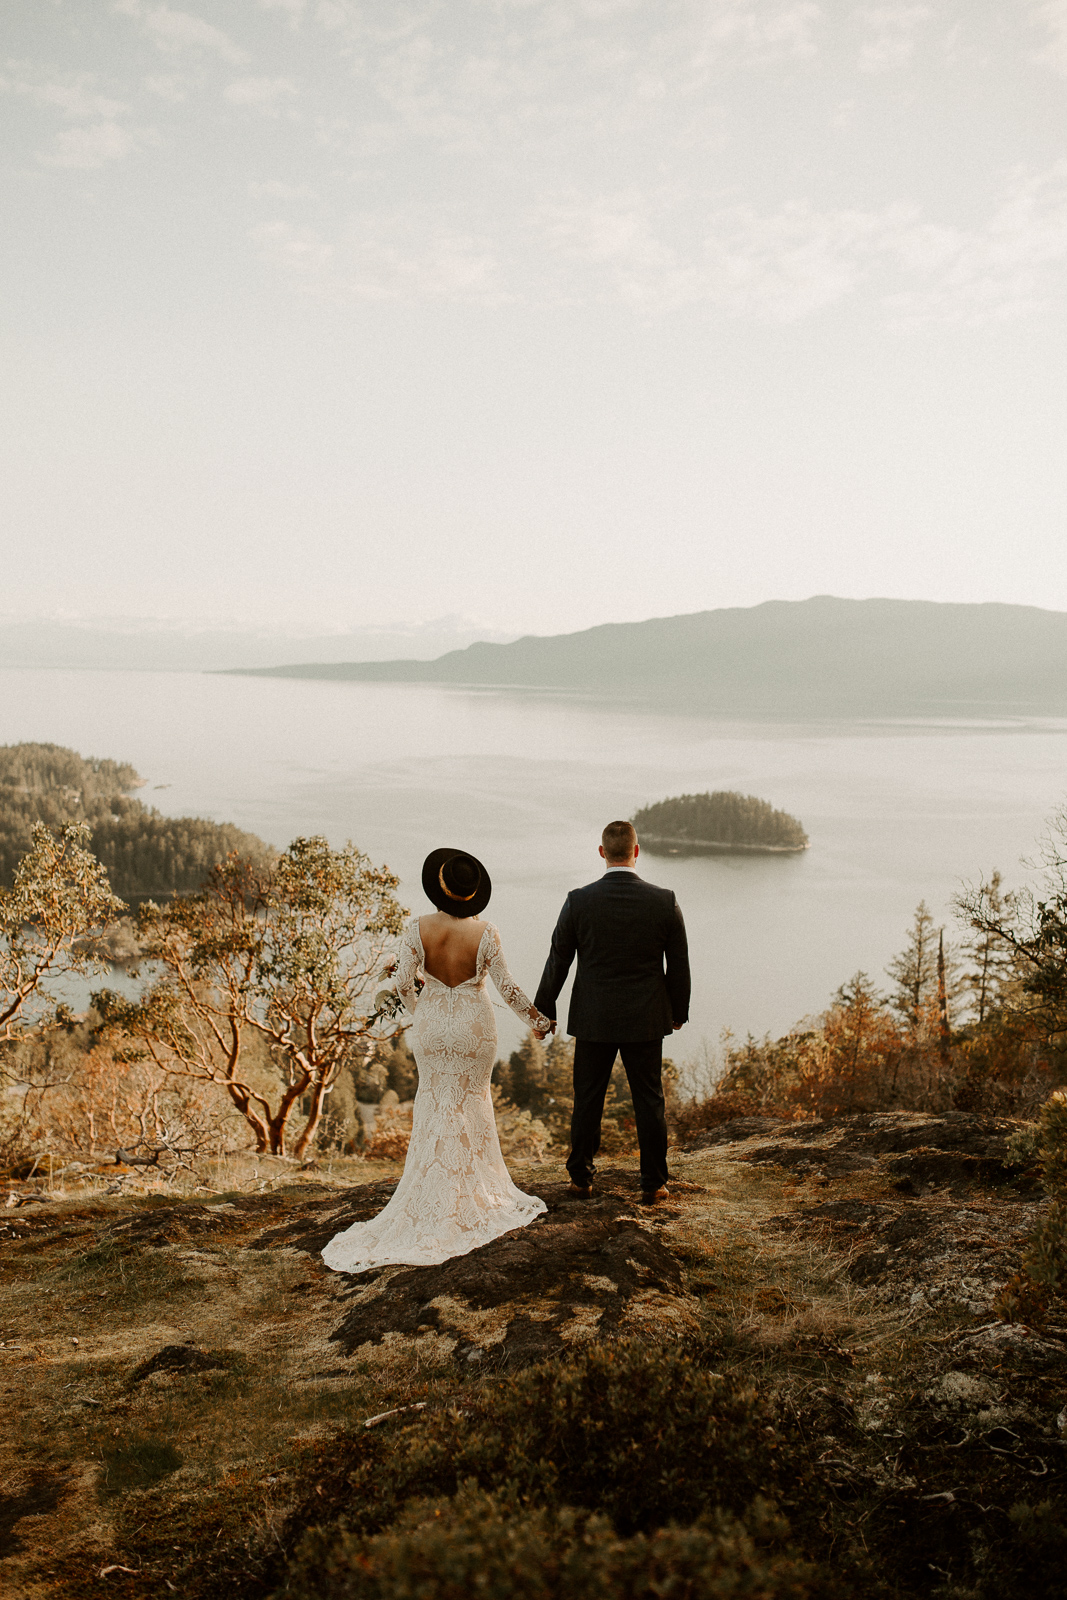 Luke Lambertson Photo_BritishColumbia_Canada_AdventurousCouple_Elopement_IMG-7933.jpg